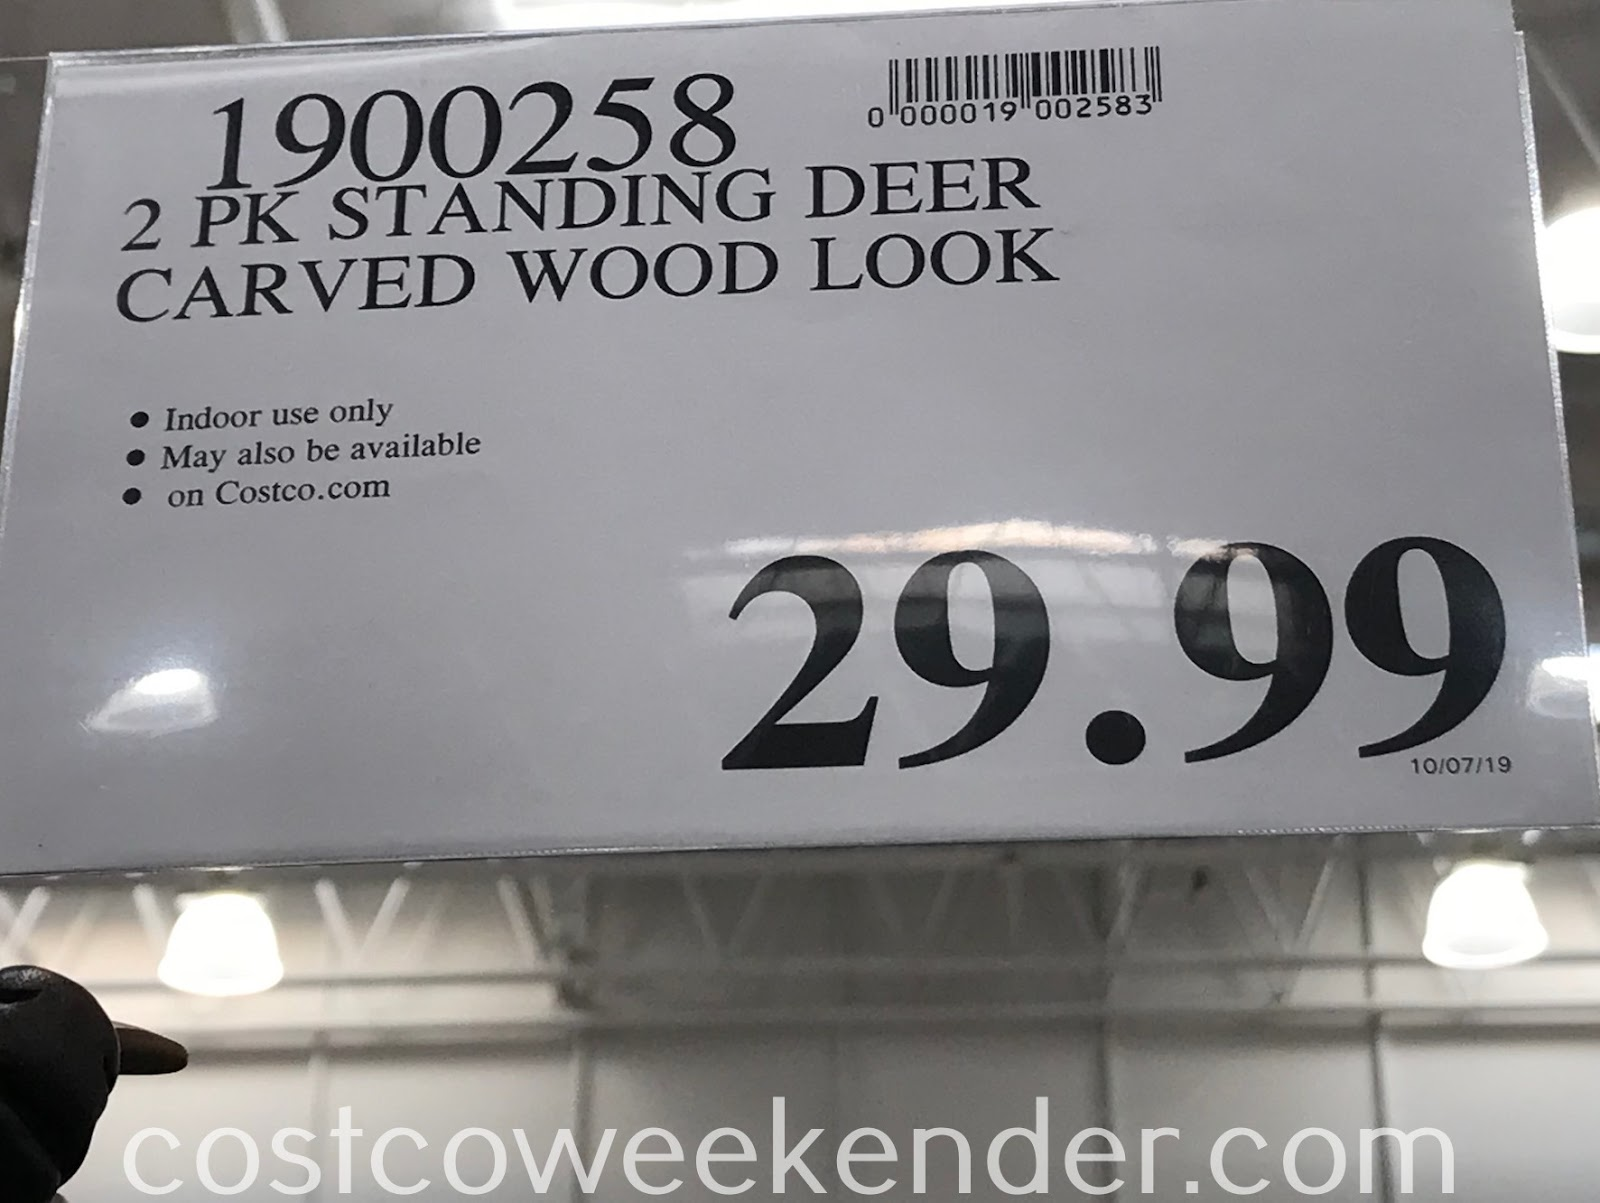 Deal for a 2 pack of Decorative Carved Wood Look Deer at Costco